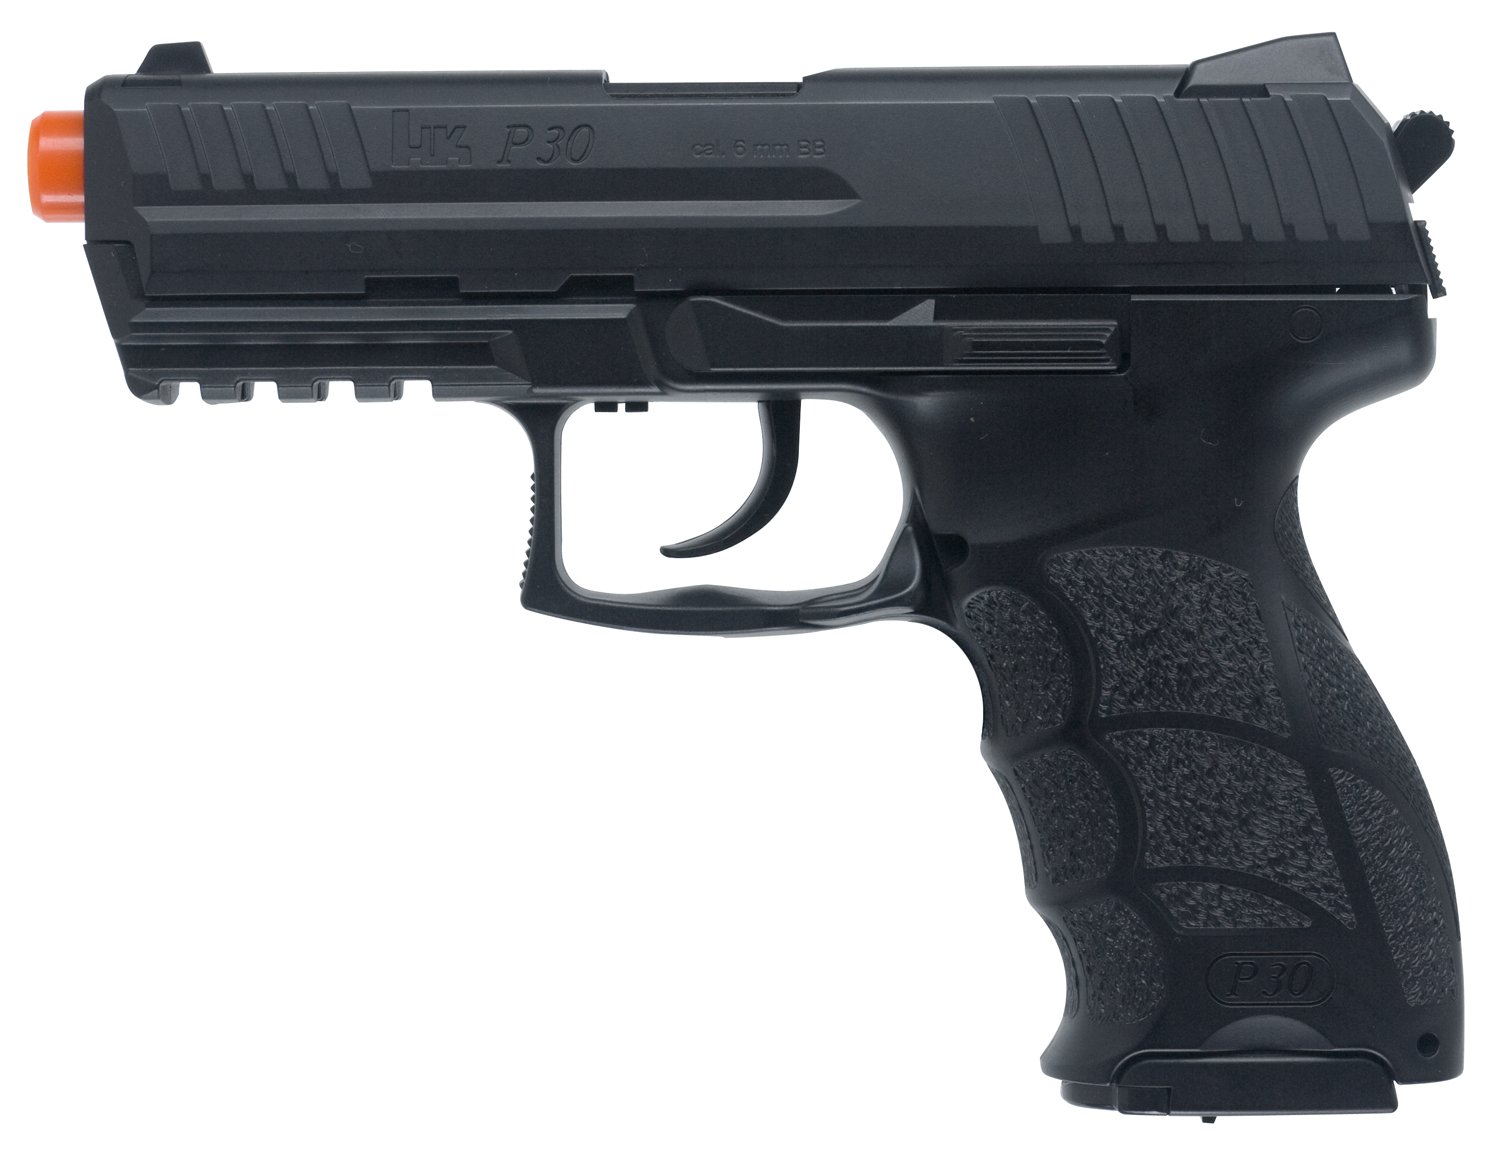 Amazon.com : HK P30 6mm Airsoft with Metal Slide : Airsoft Pistols